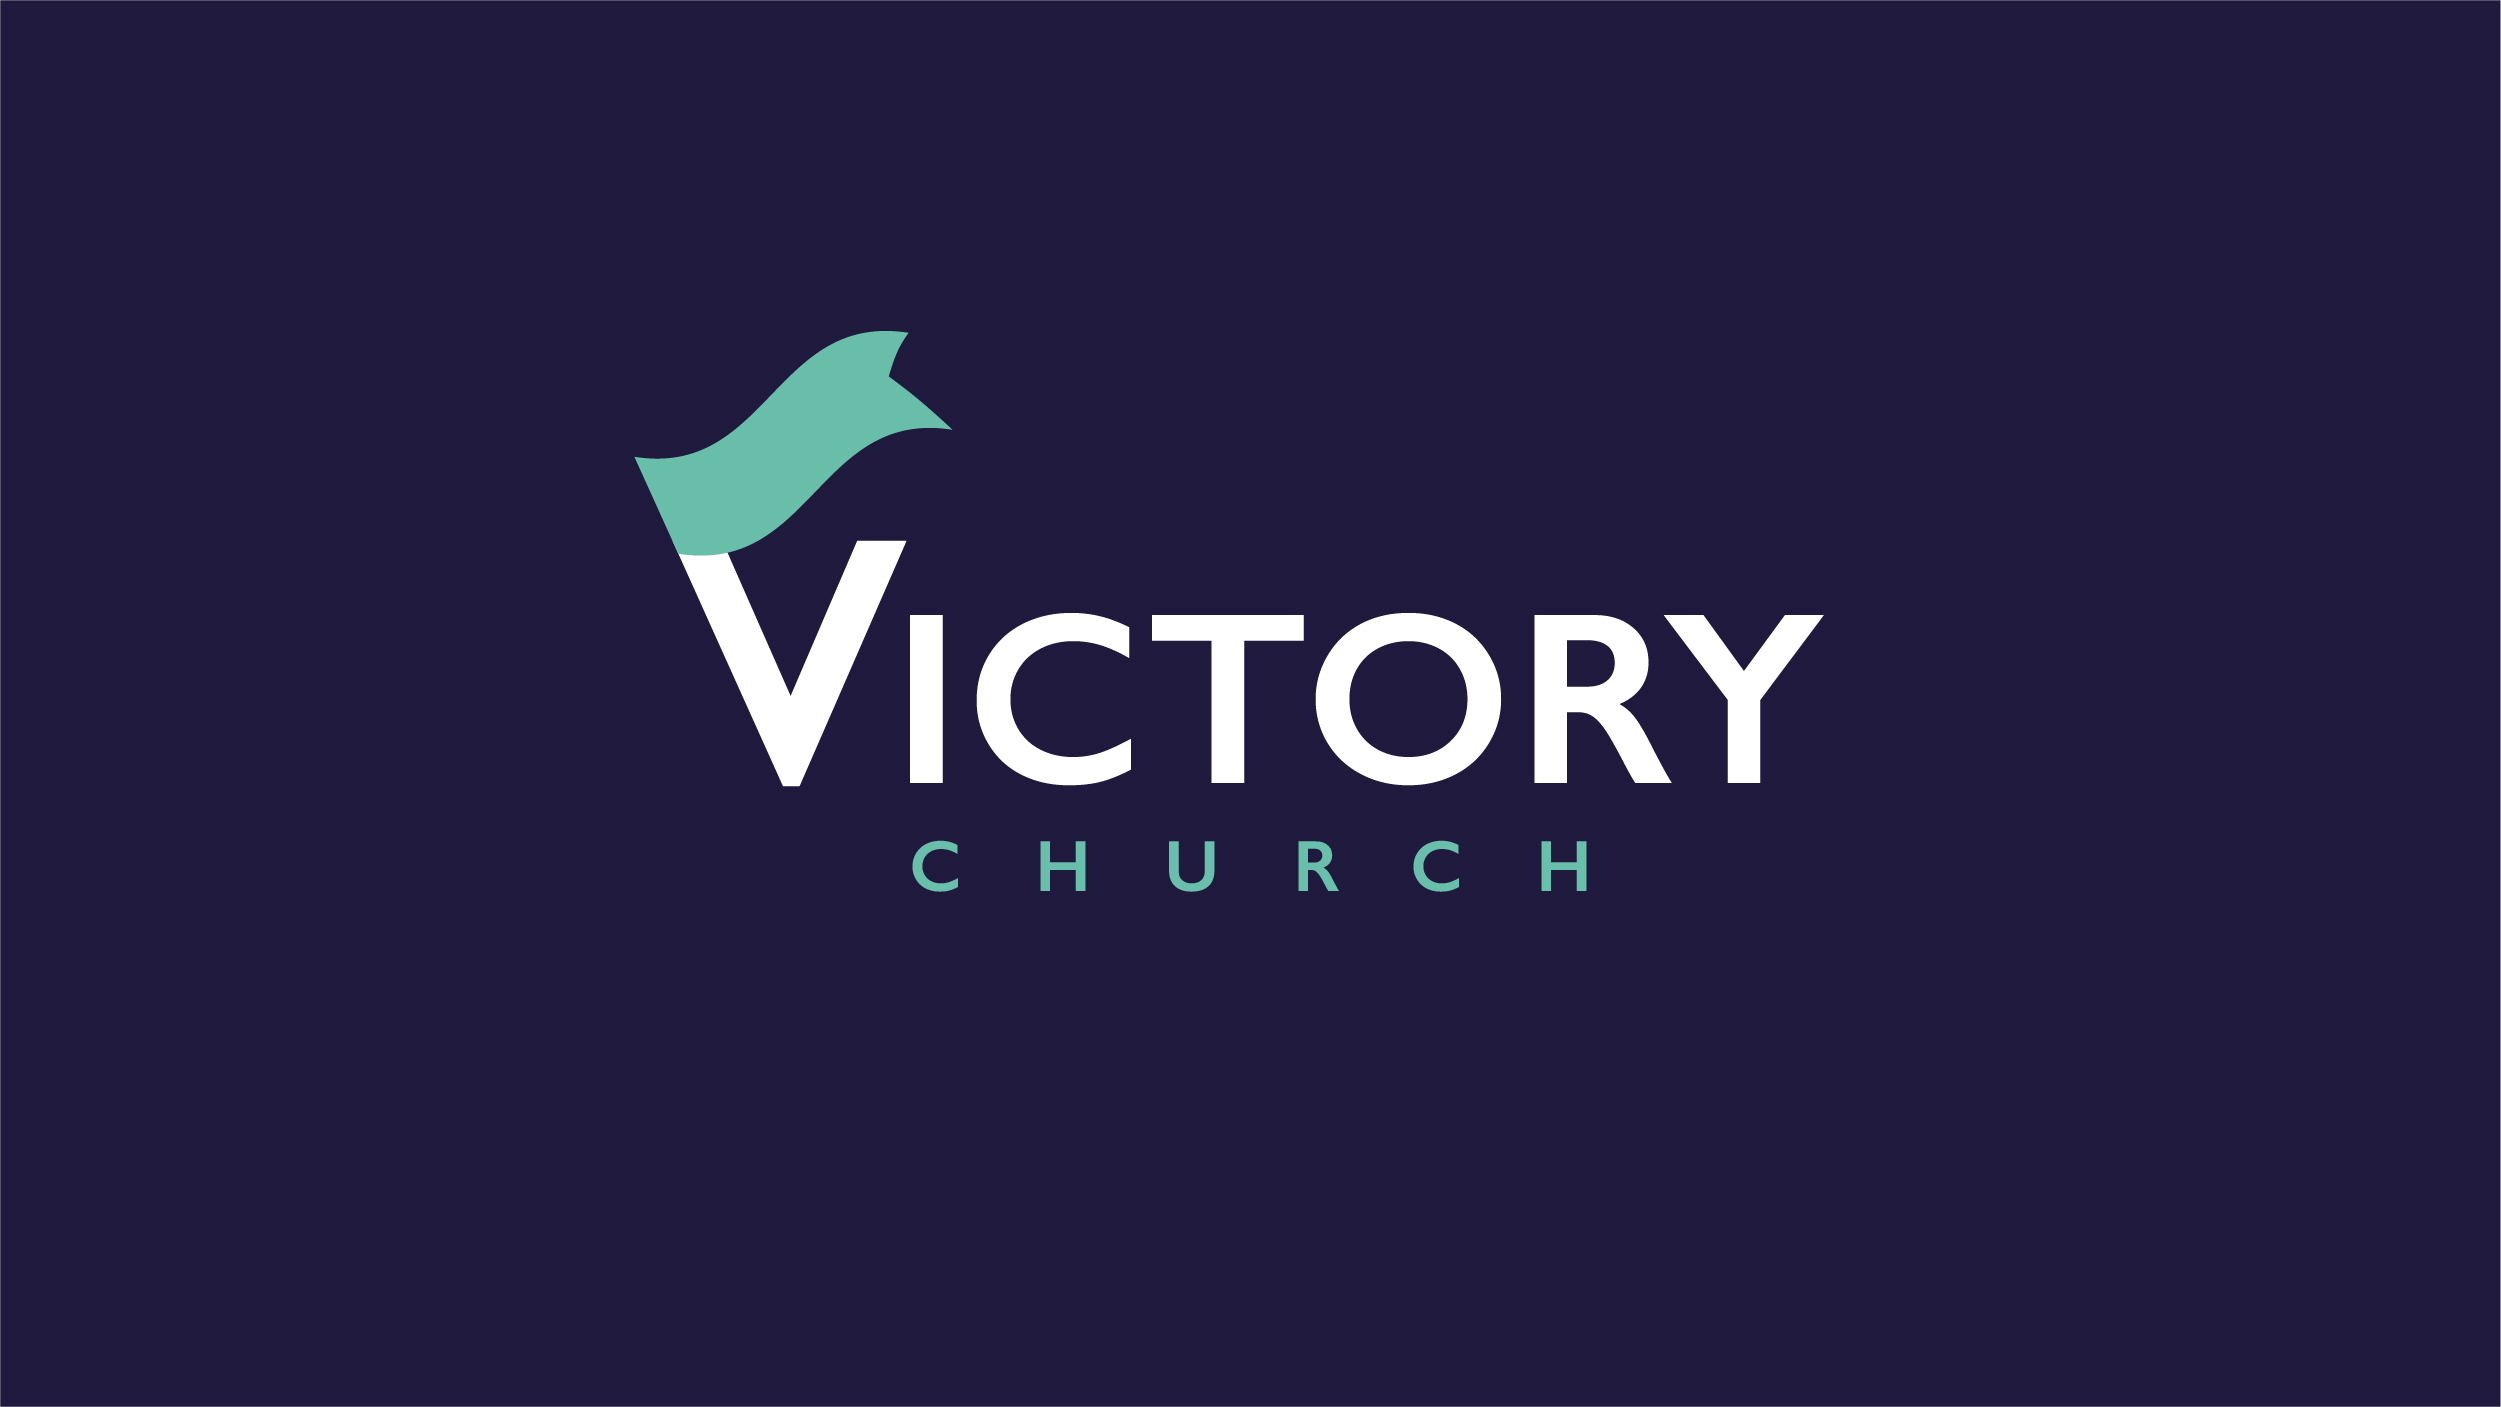 Victory Church final logo